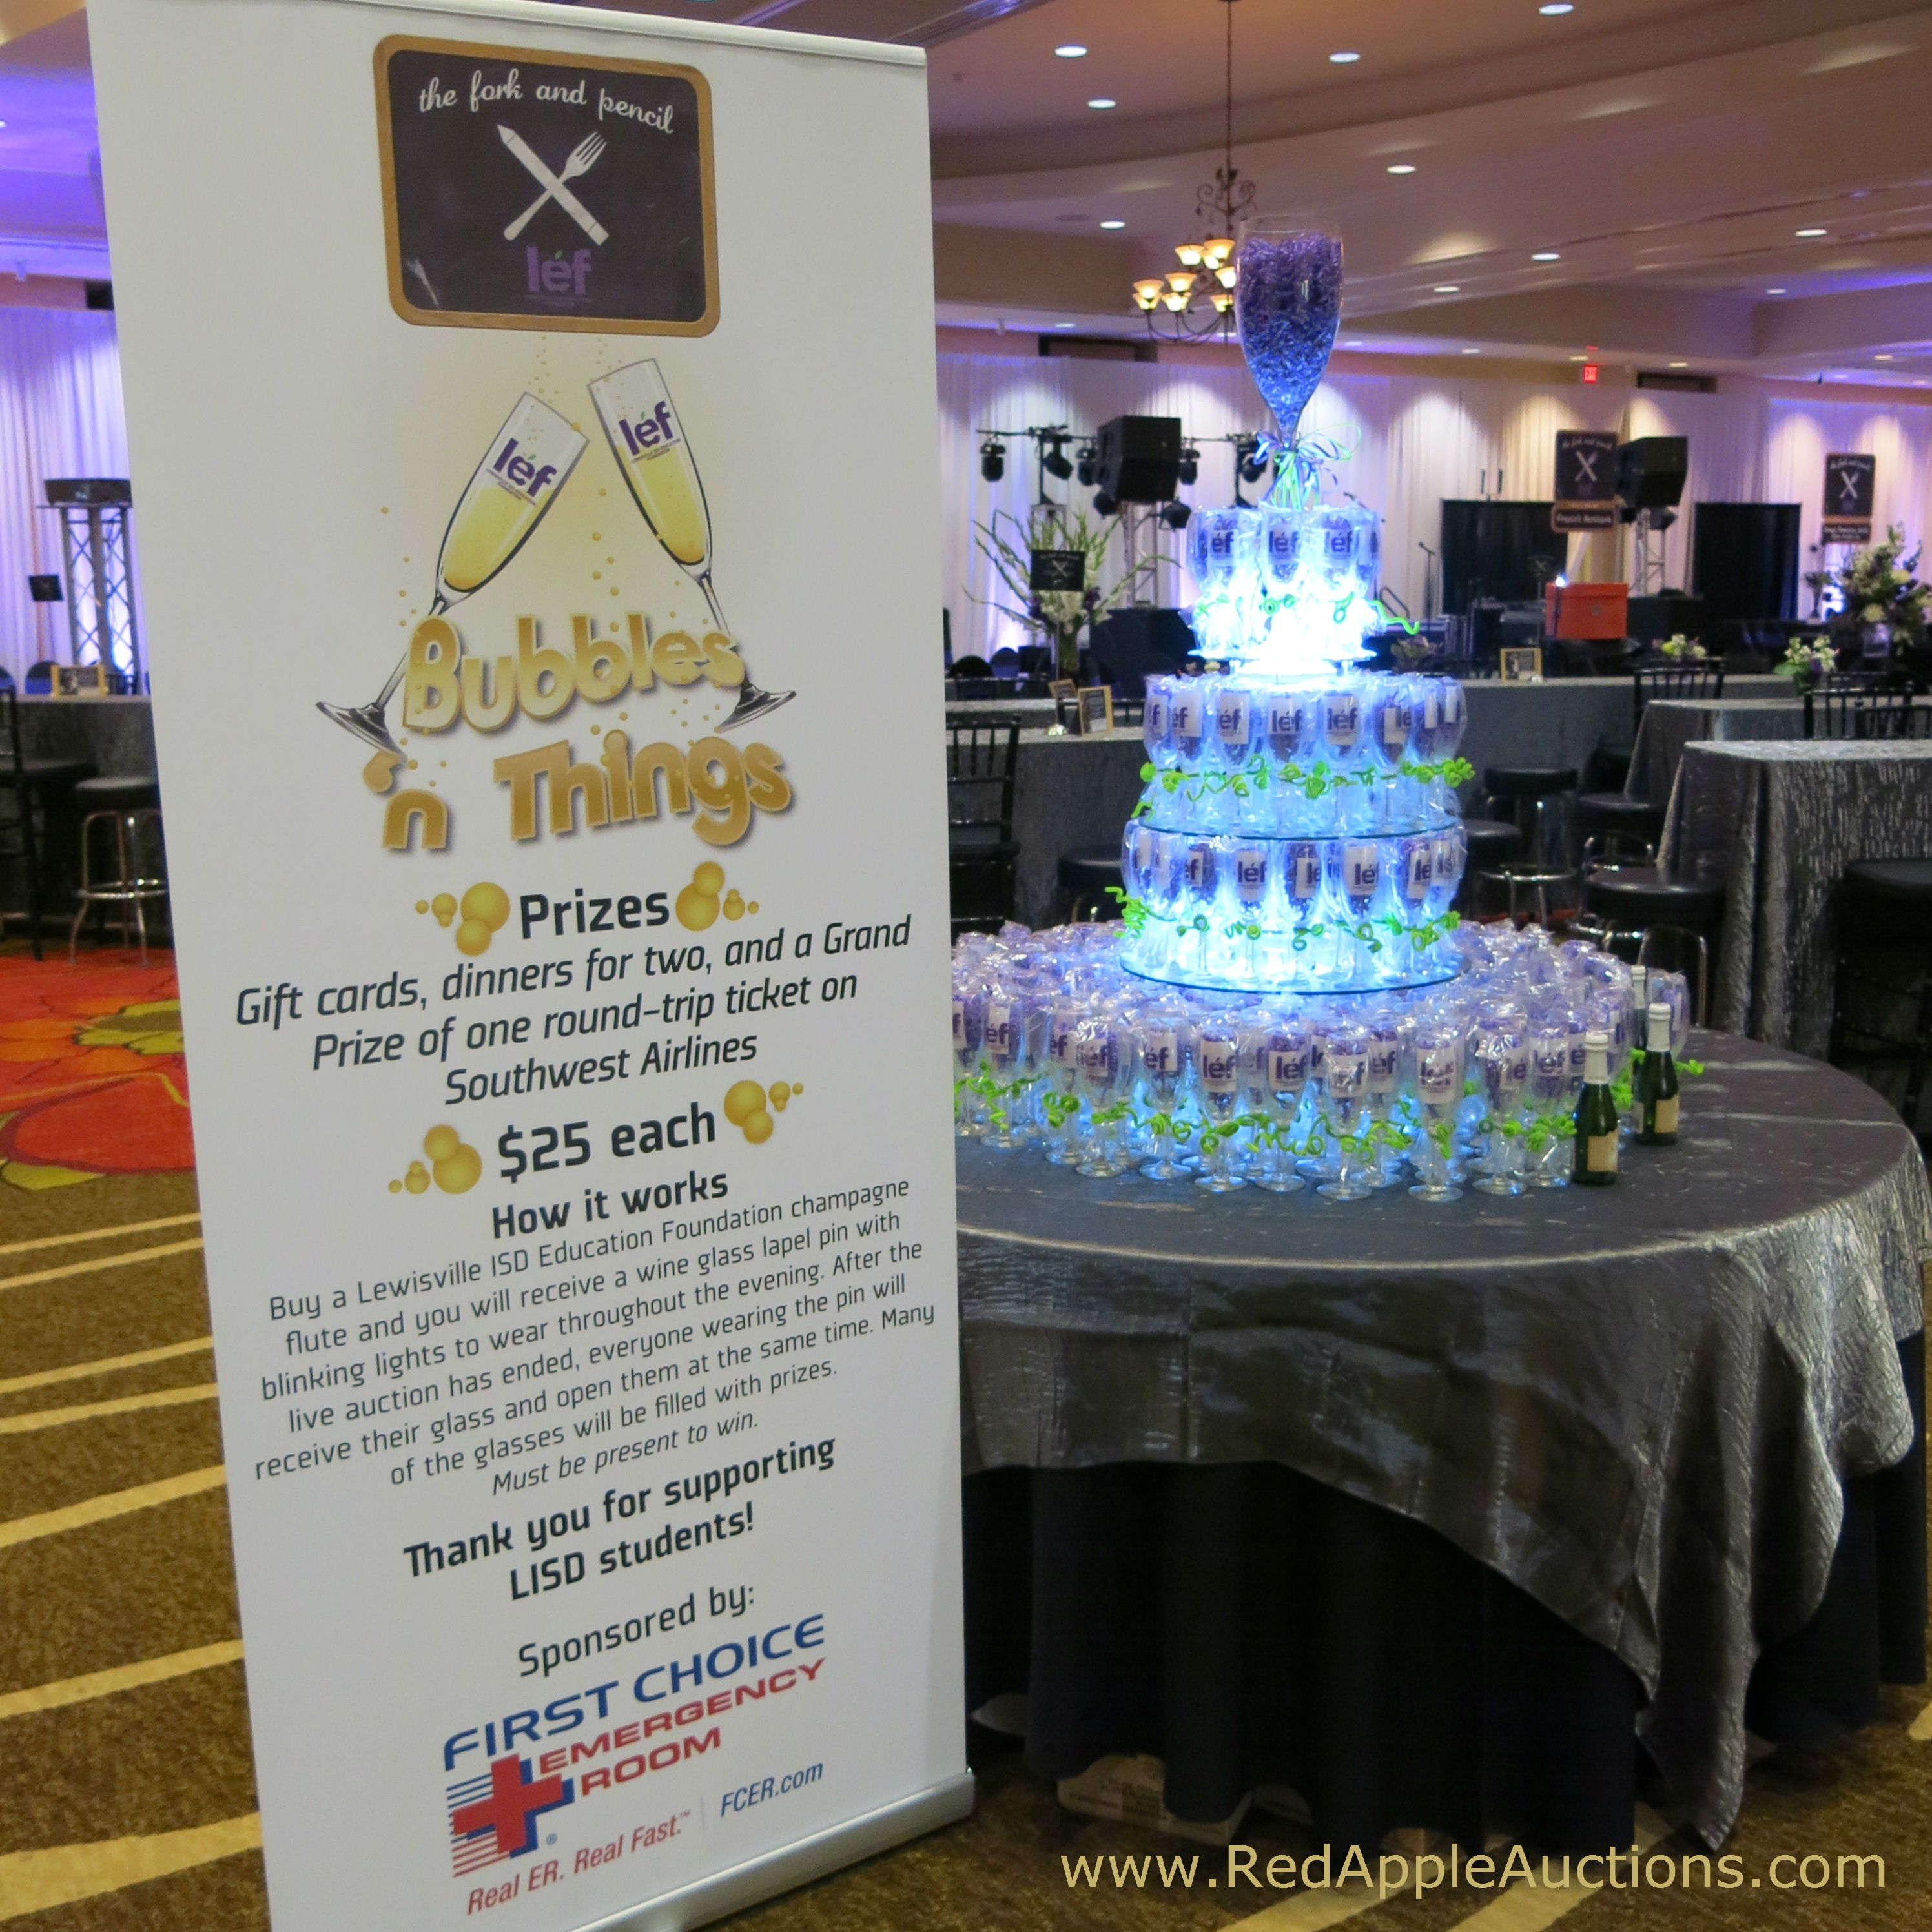 explore banquet ideas fundraiser and more